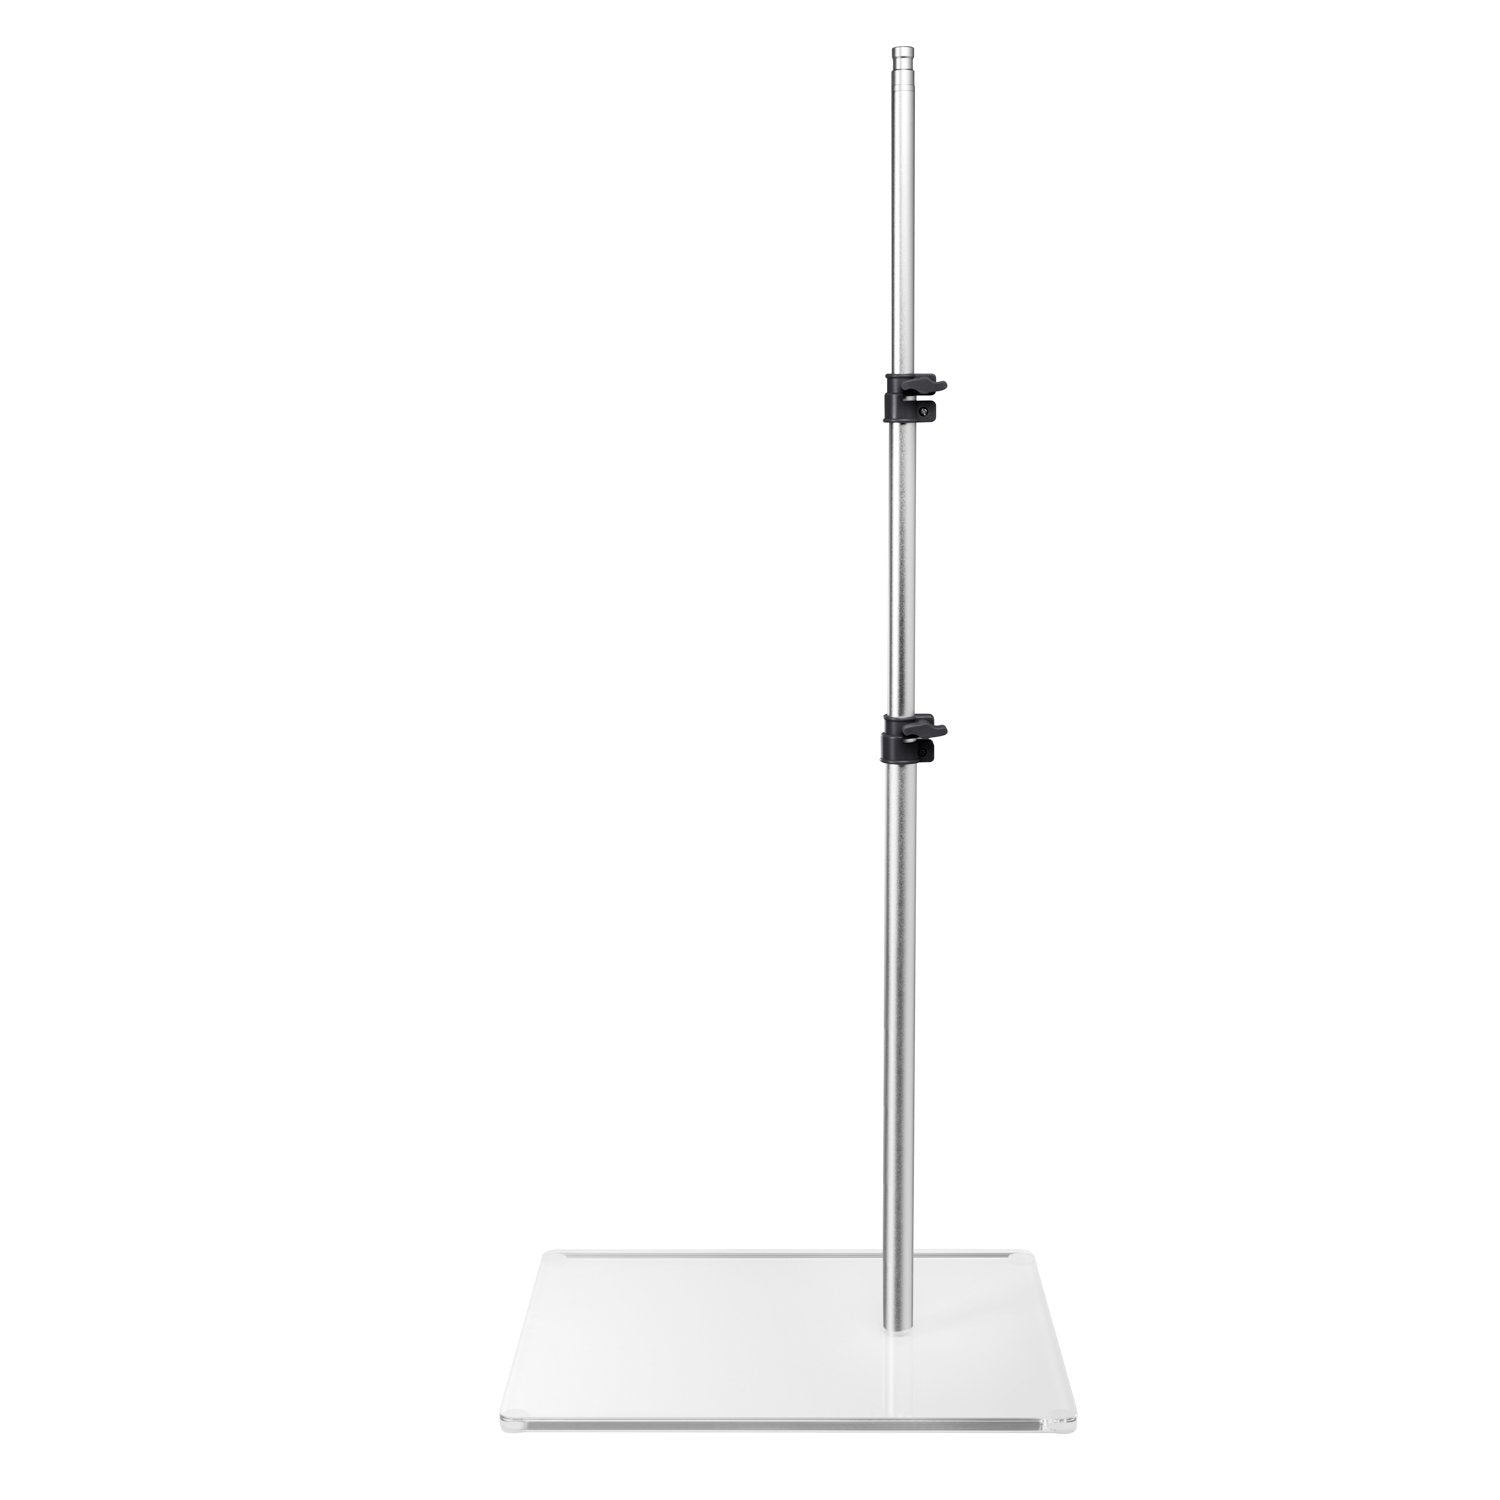 Universal Flat Base Stand, Best for permanent location (esp. studios and salons) where mobility is not a requirement. The low profile base provides more foot and leg room and takes up less floor space. Excellent for any work performed on esthetician beds or tattoo client chairs/beds